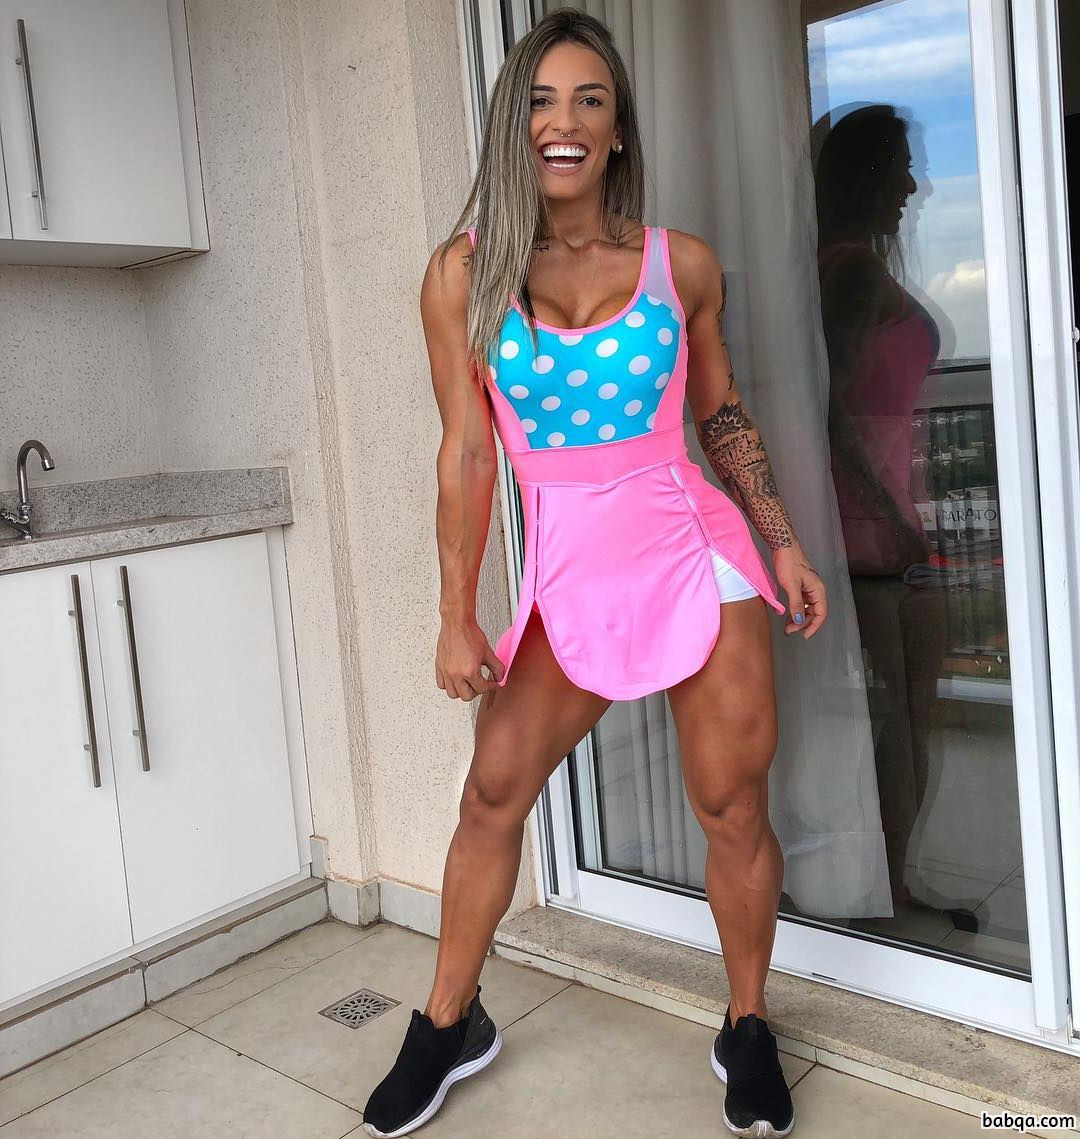 beautiful female with muscular body and muscle legs image from linkedin